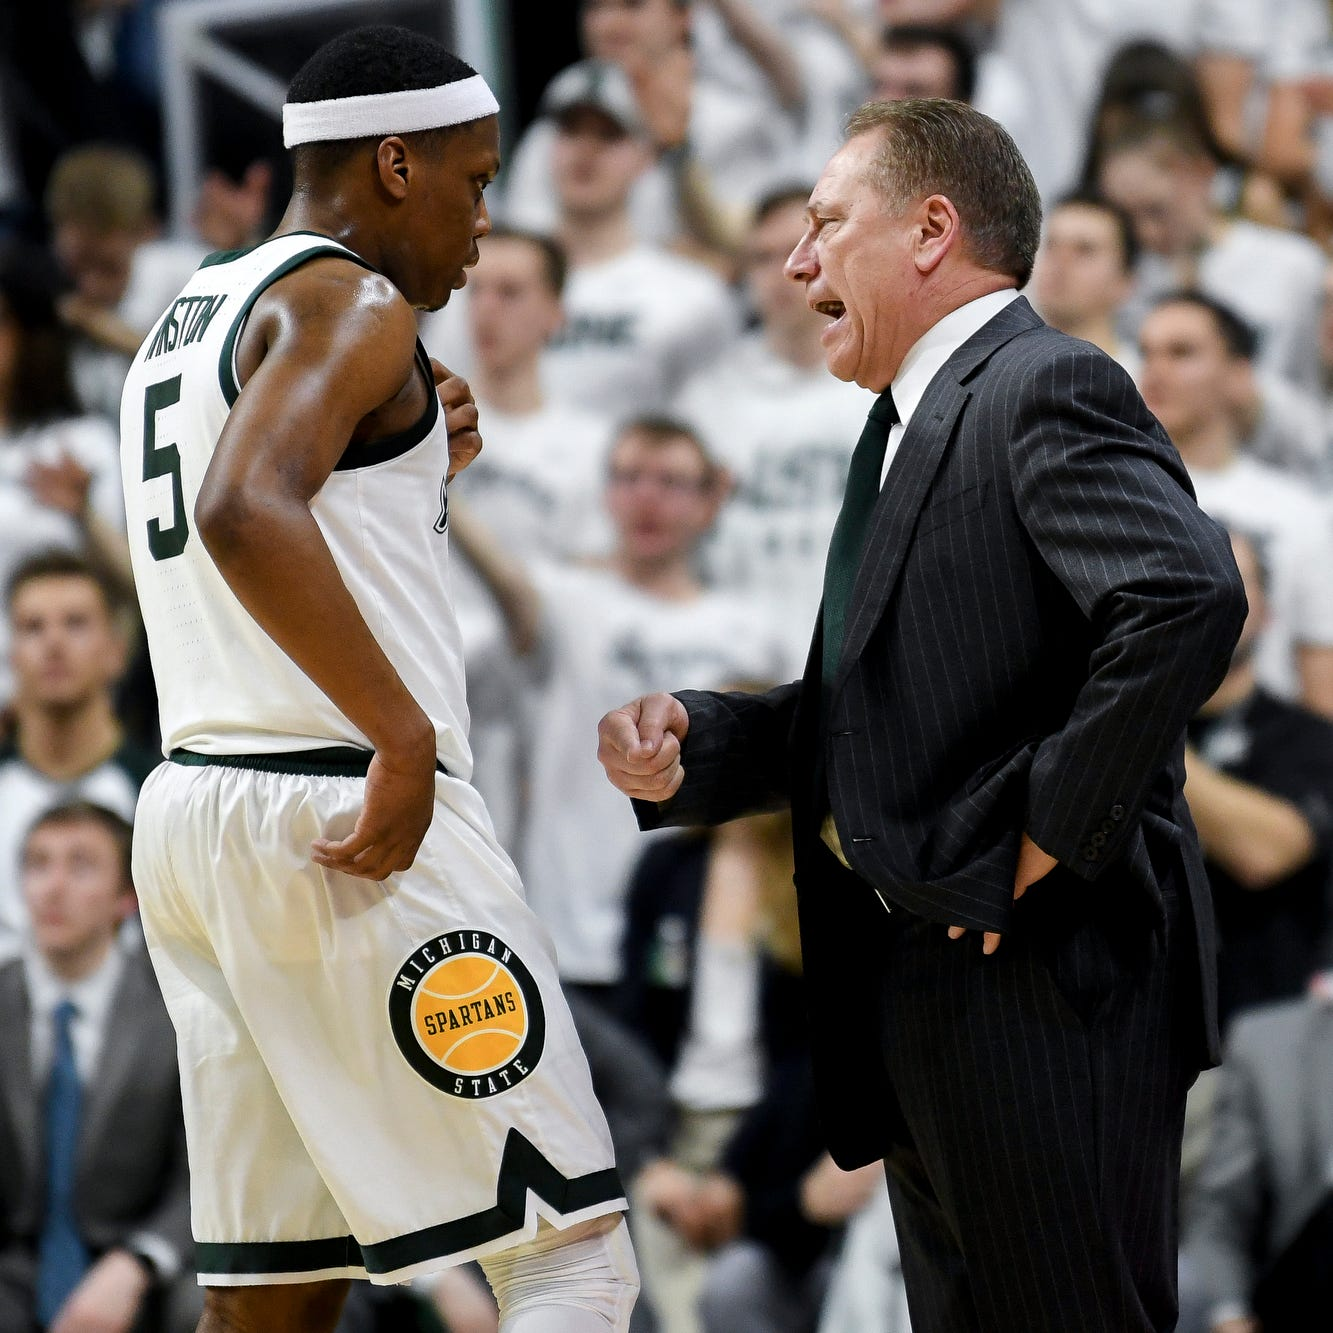 Michigan State's Tom Izzo reminds us again why we shouldn't doubt him